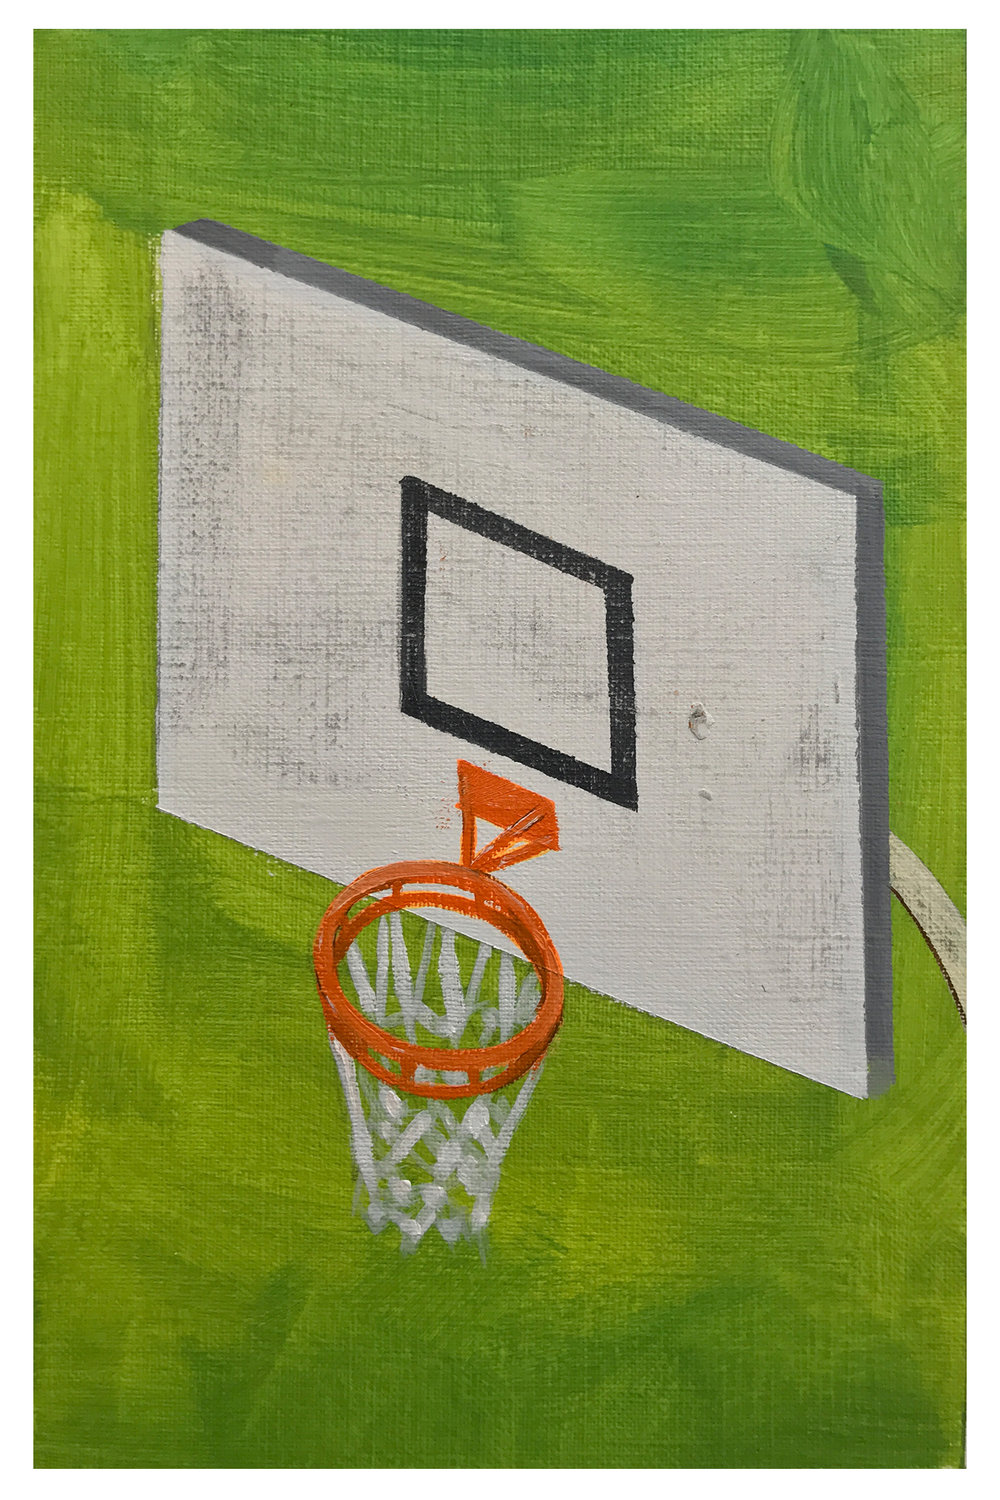 Basket, 9 x 6 in.